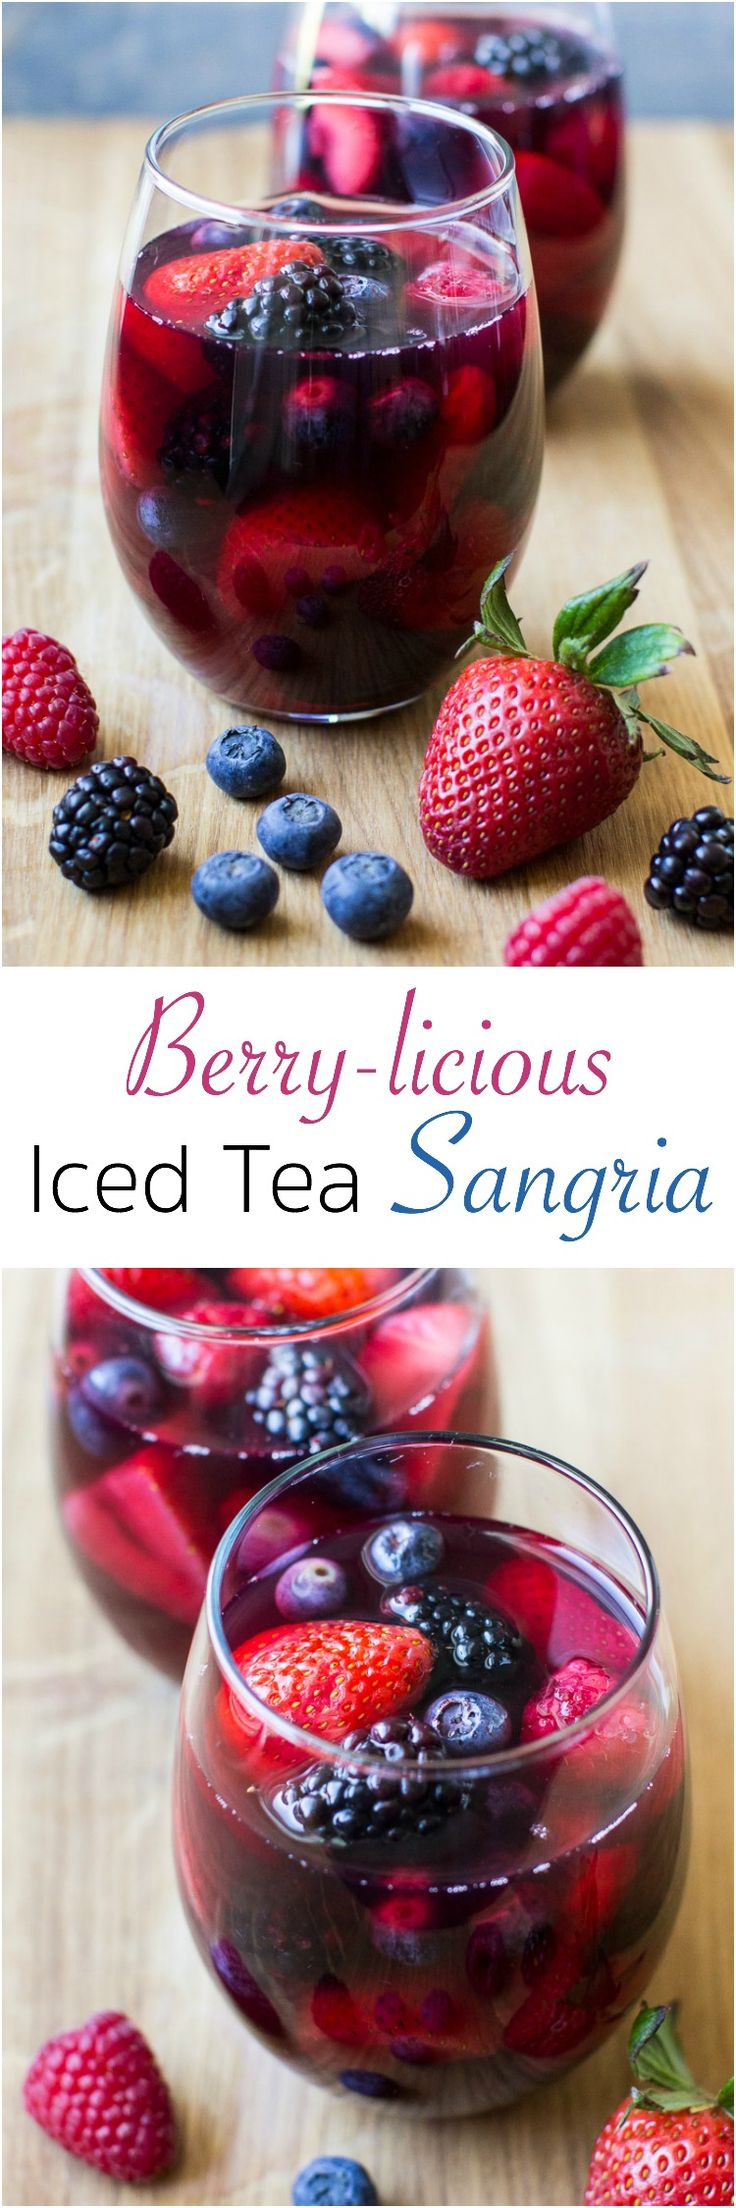 Sip the flavors of summer with Berry-licious Iced Tea Red Sangria! This easy…